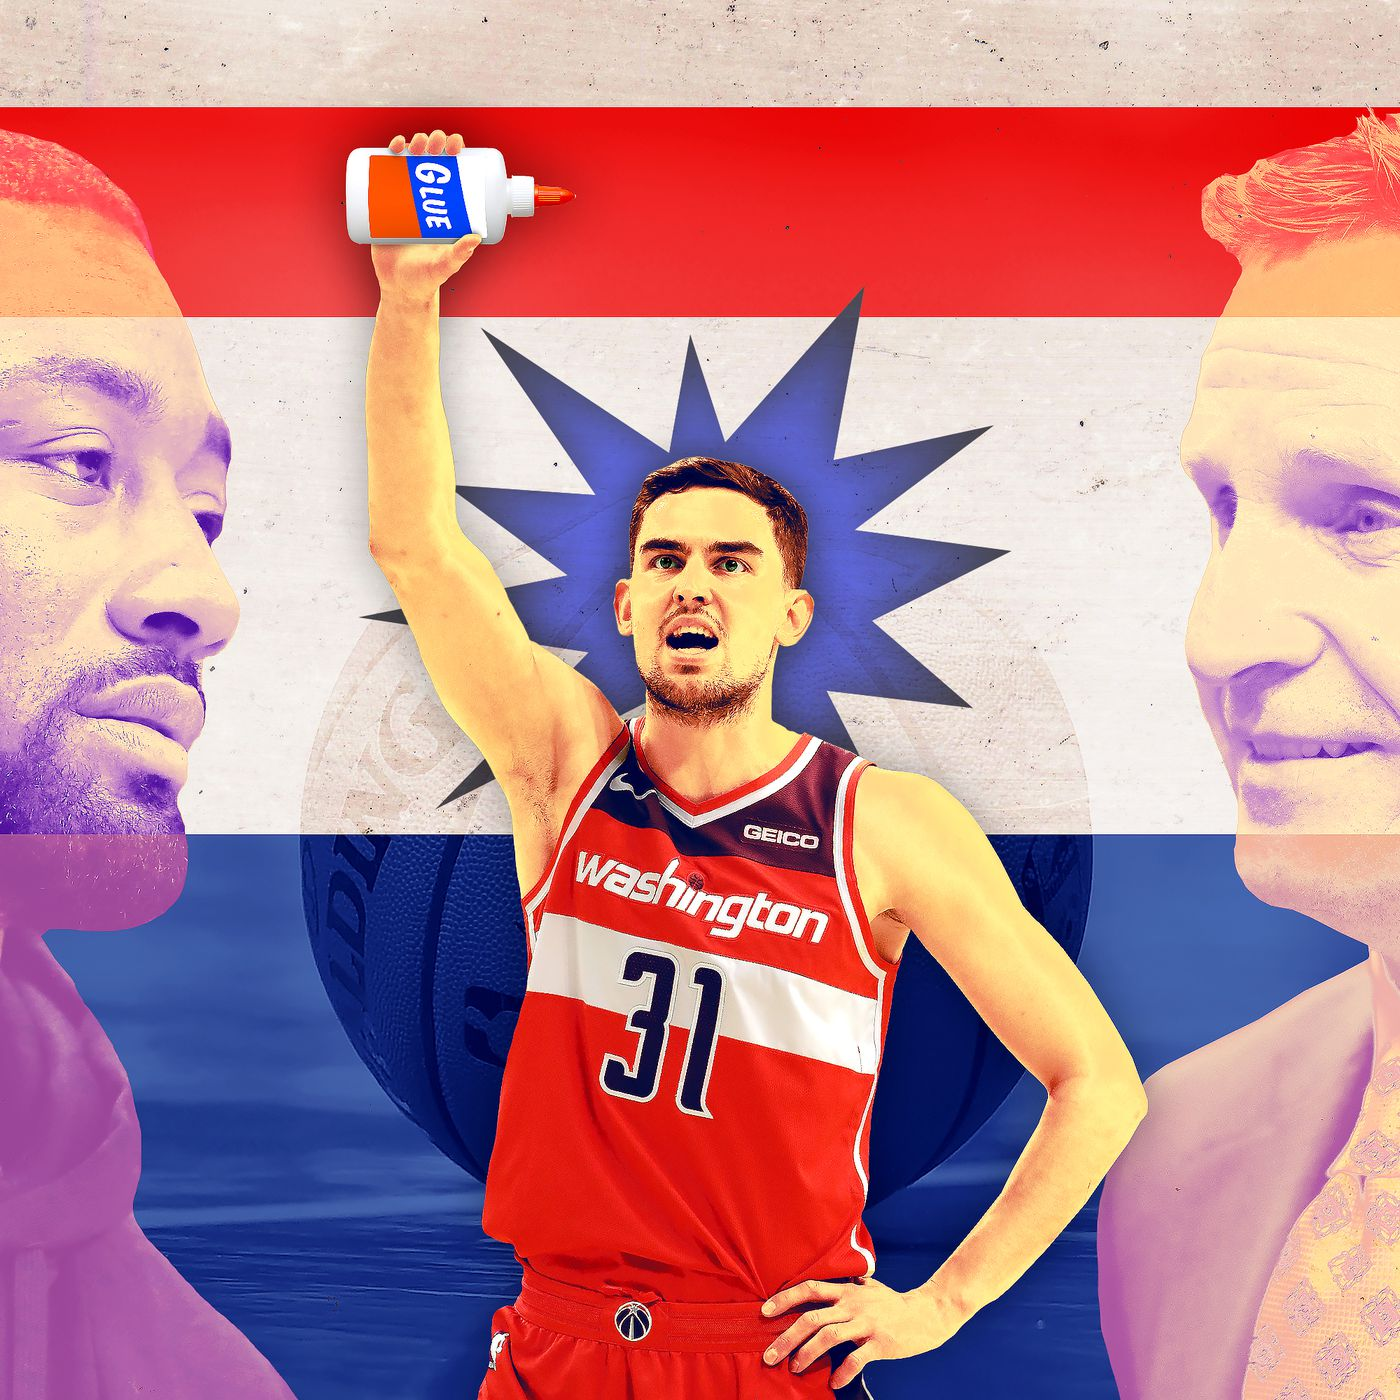 b84baed61af Tomas Satoransky Is Keeping the Wizards Together - The Ringer